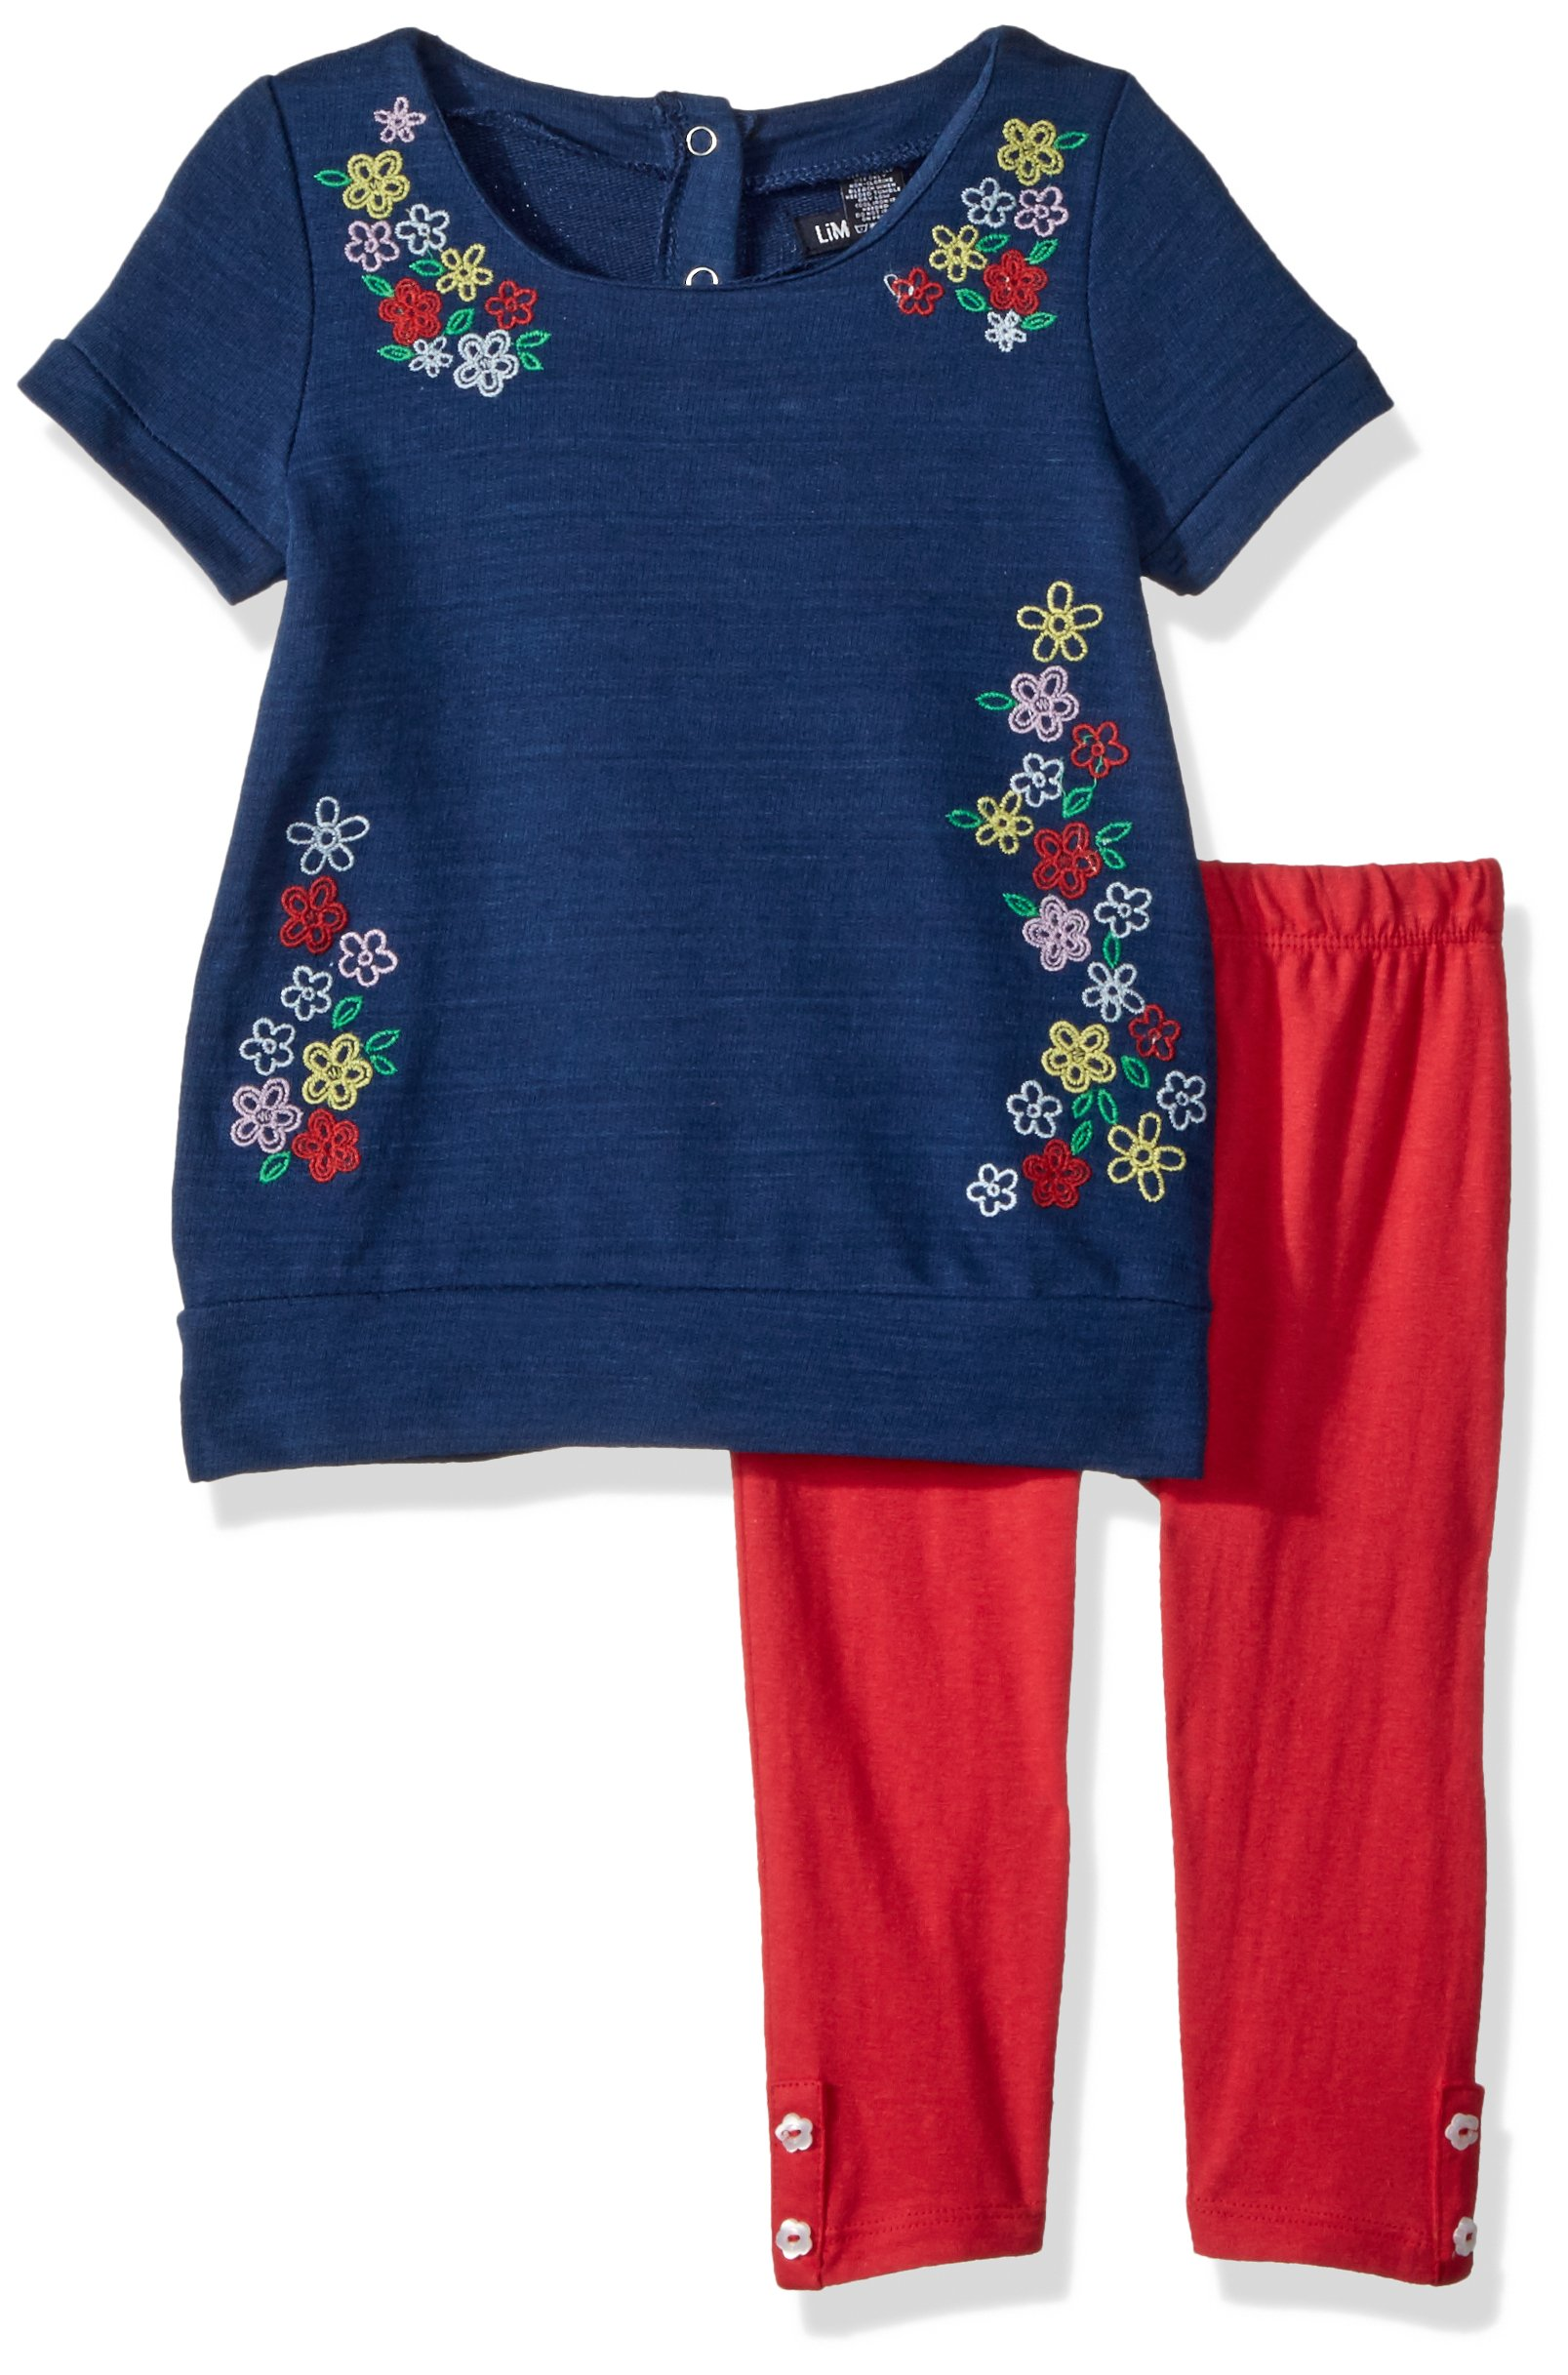 Limited Too Toddler Girls' Fashion Top and Legging Set, Cascading Flowers Engine Red, 4T